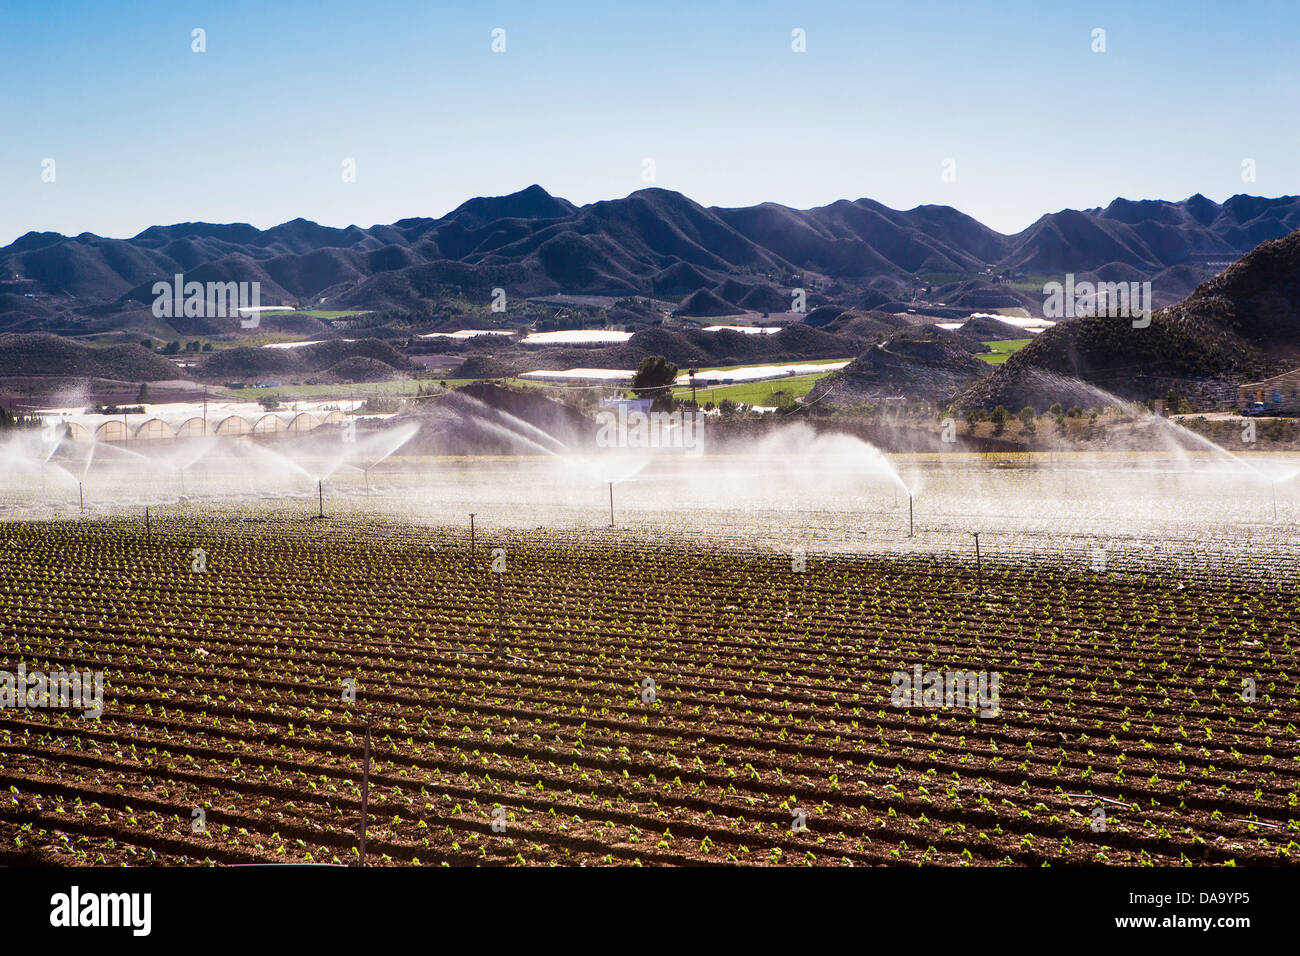 Spain, Europe, agriculture, automatic, dry, field, mountain, Murcia, range, watering, irrigation - Stock Image